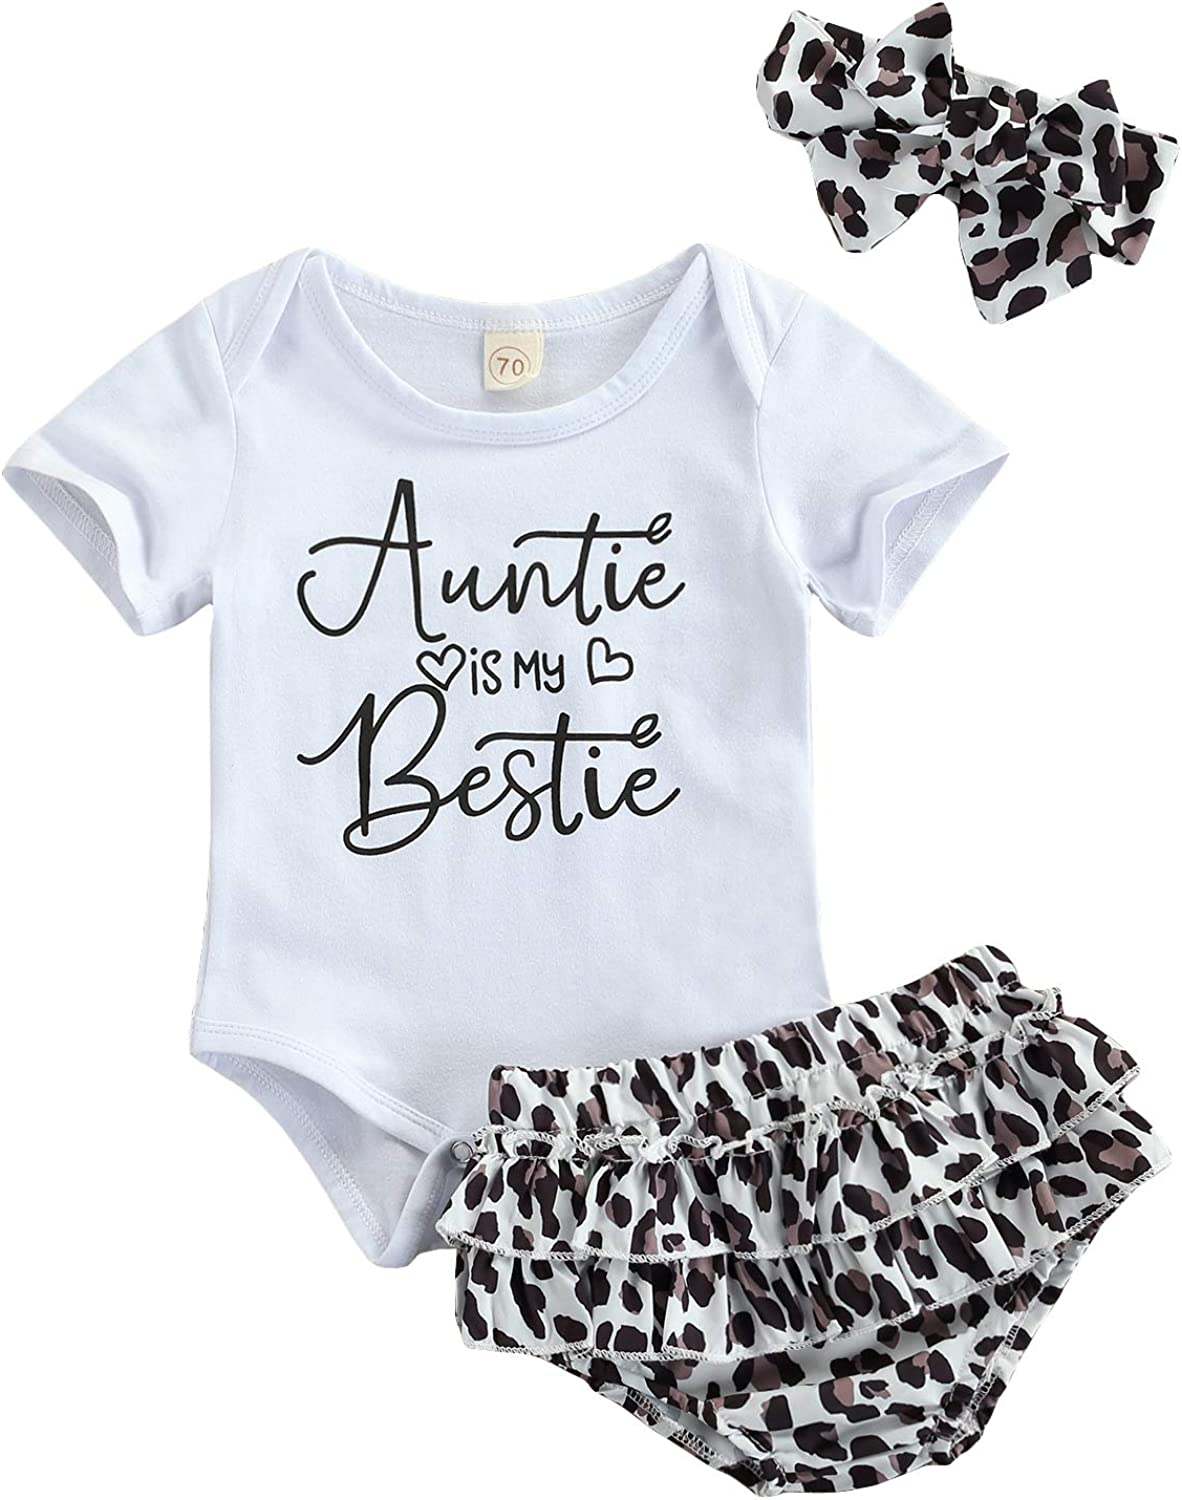 Auntie is My Bestie Baby Girl Outfit Short Sleeve Letter Print Romper Leopard Bloomers Shorts Headband Summer Clothes